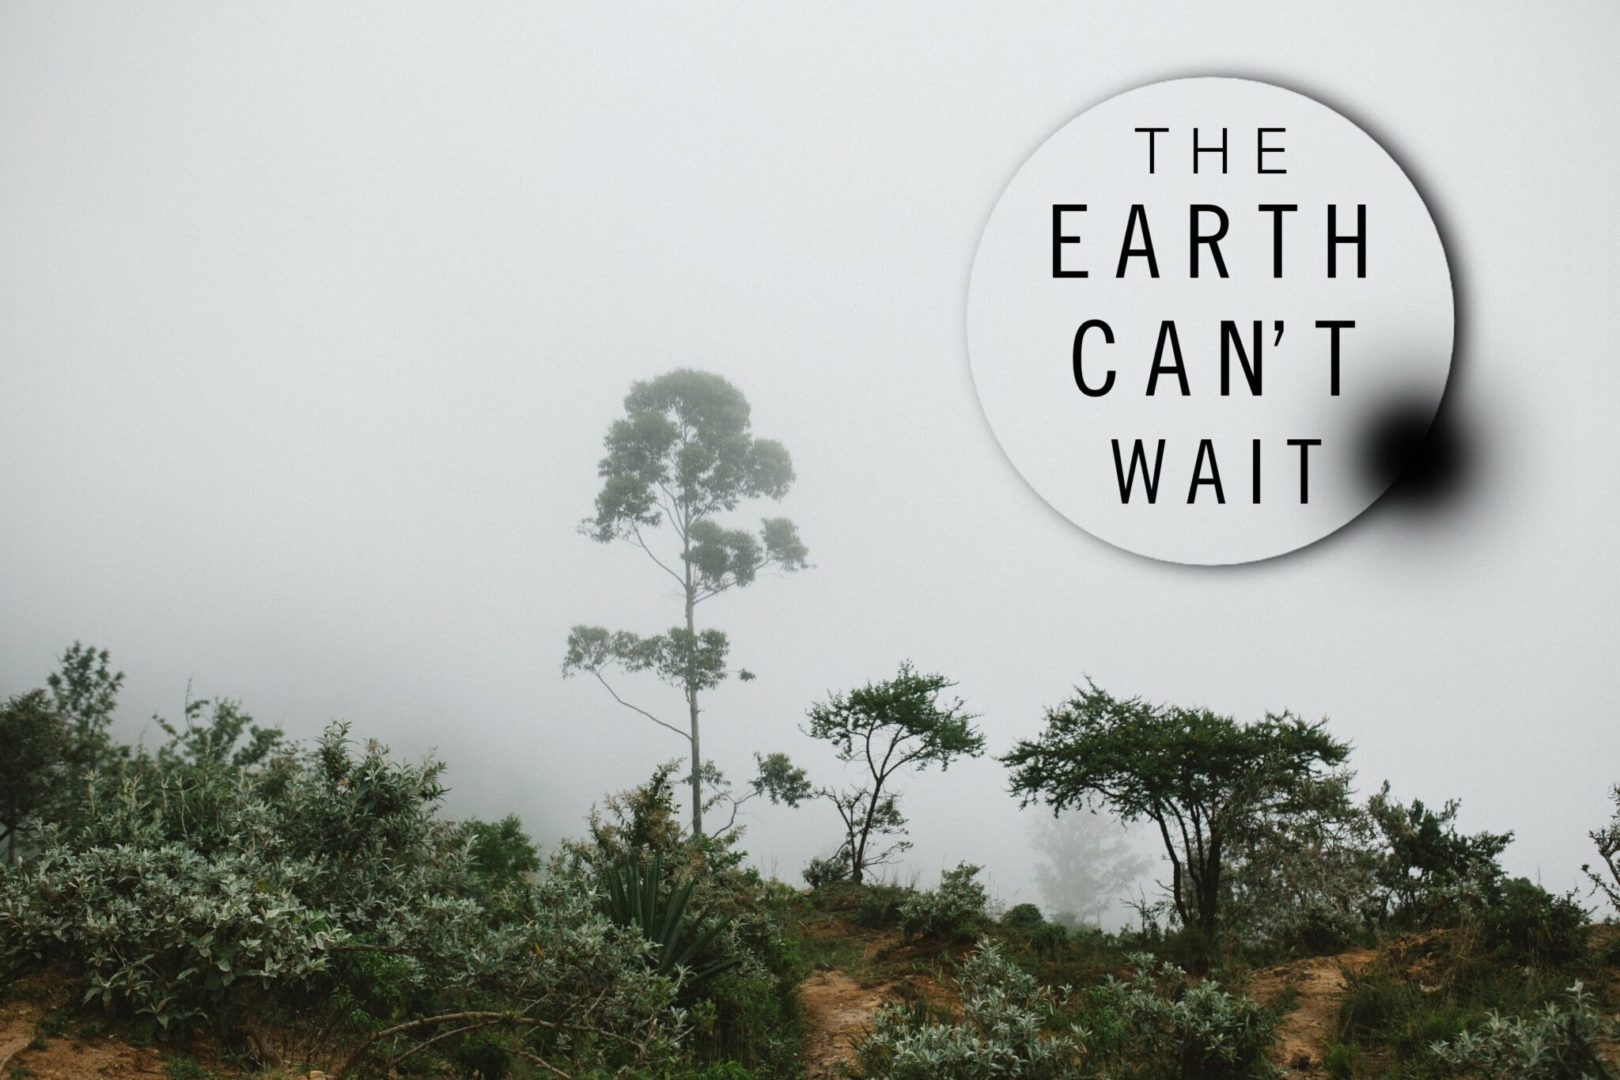 The Earth Can't Wait campaign